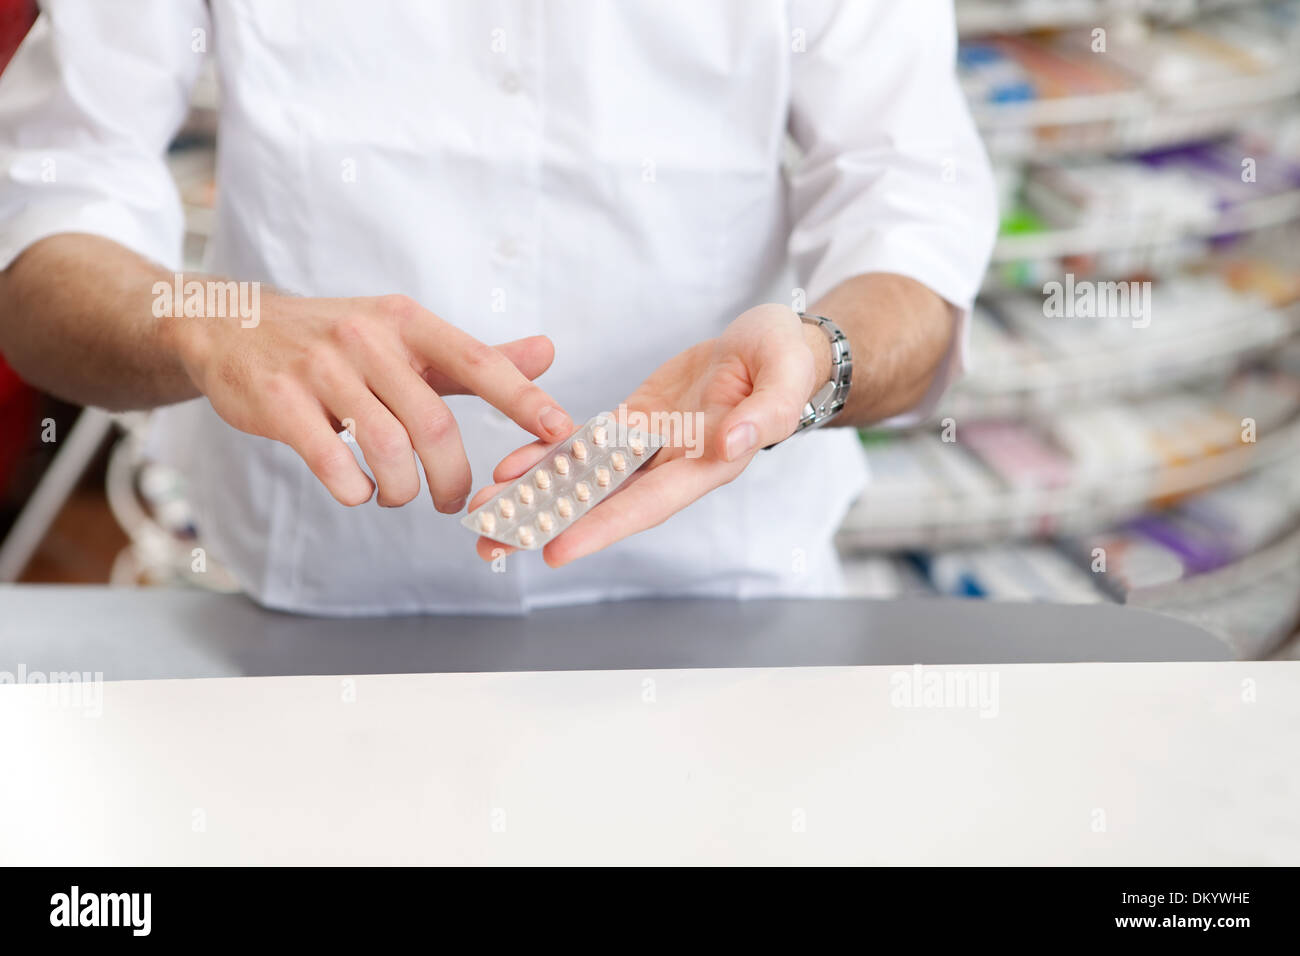 Male Pharmacist Giving Prescription Medicine - Stock Image